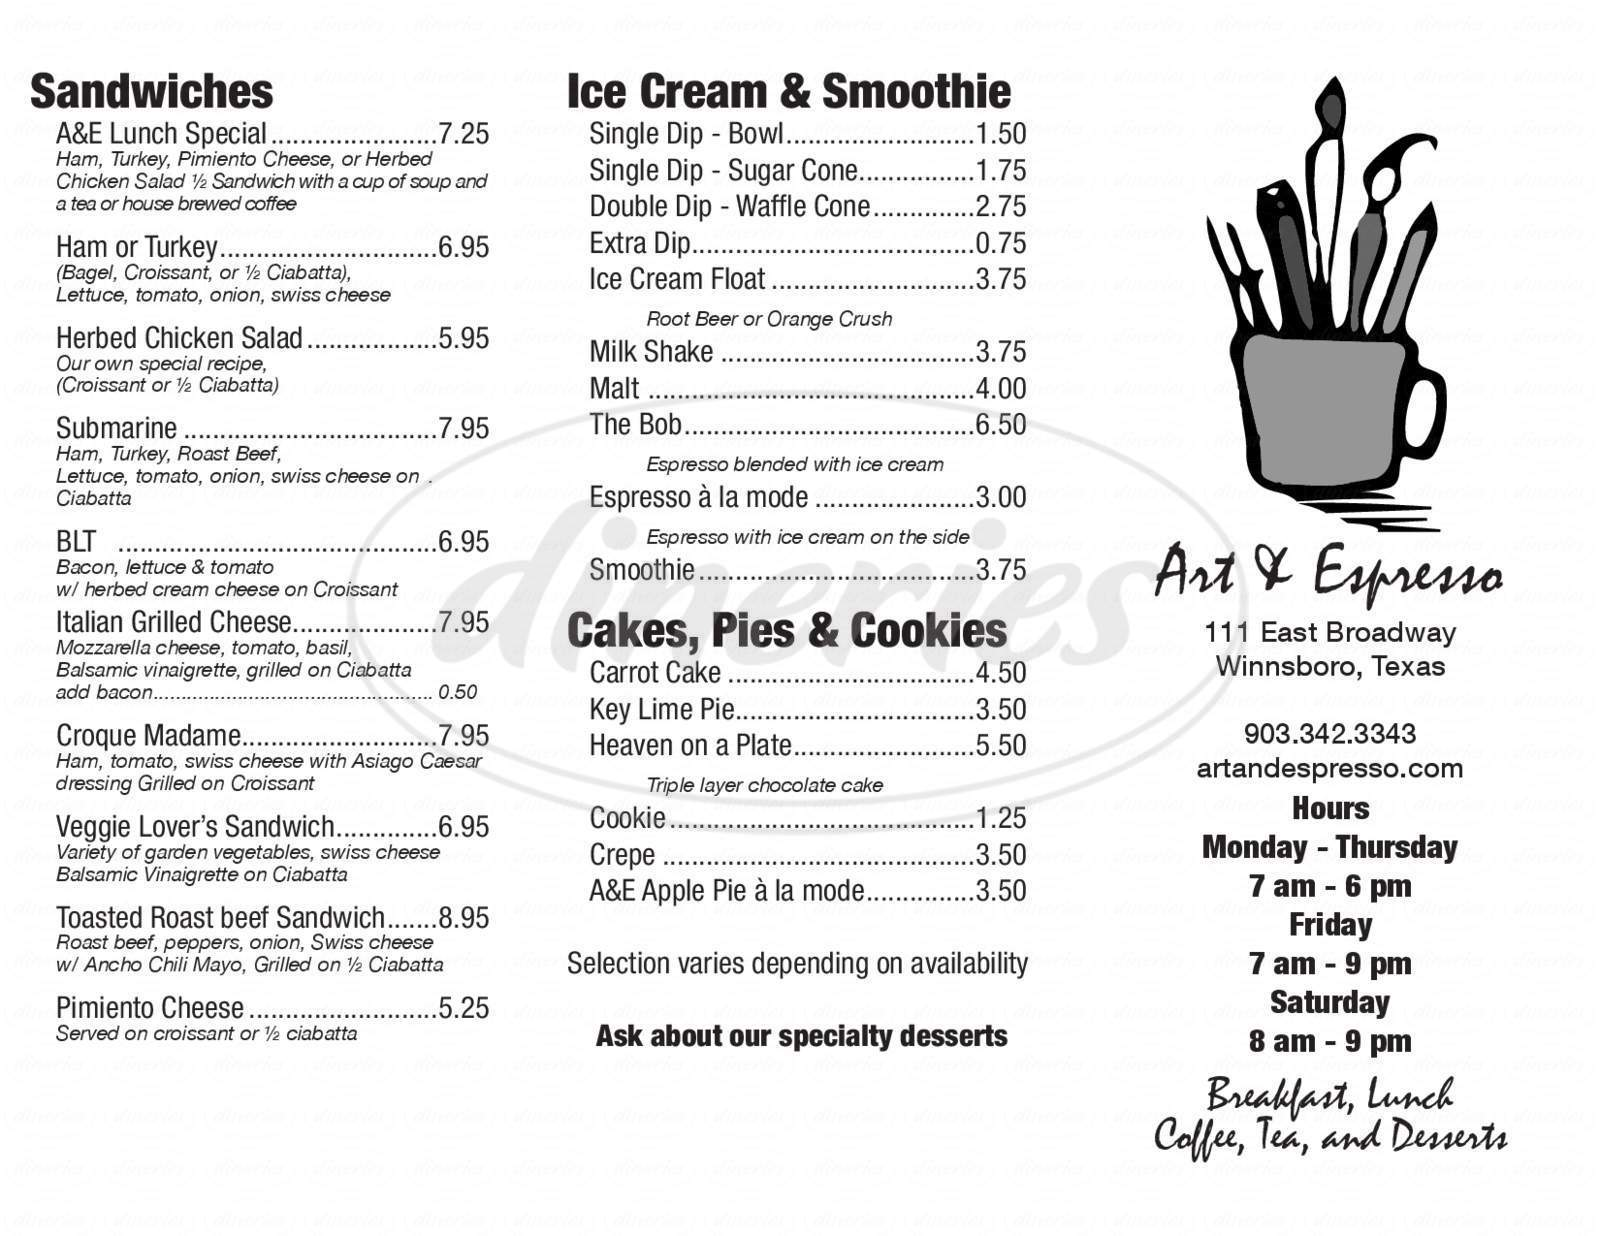 menu for Art & Espresso